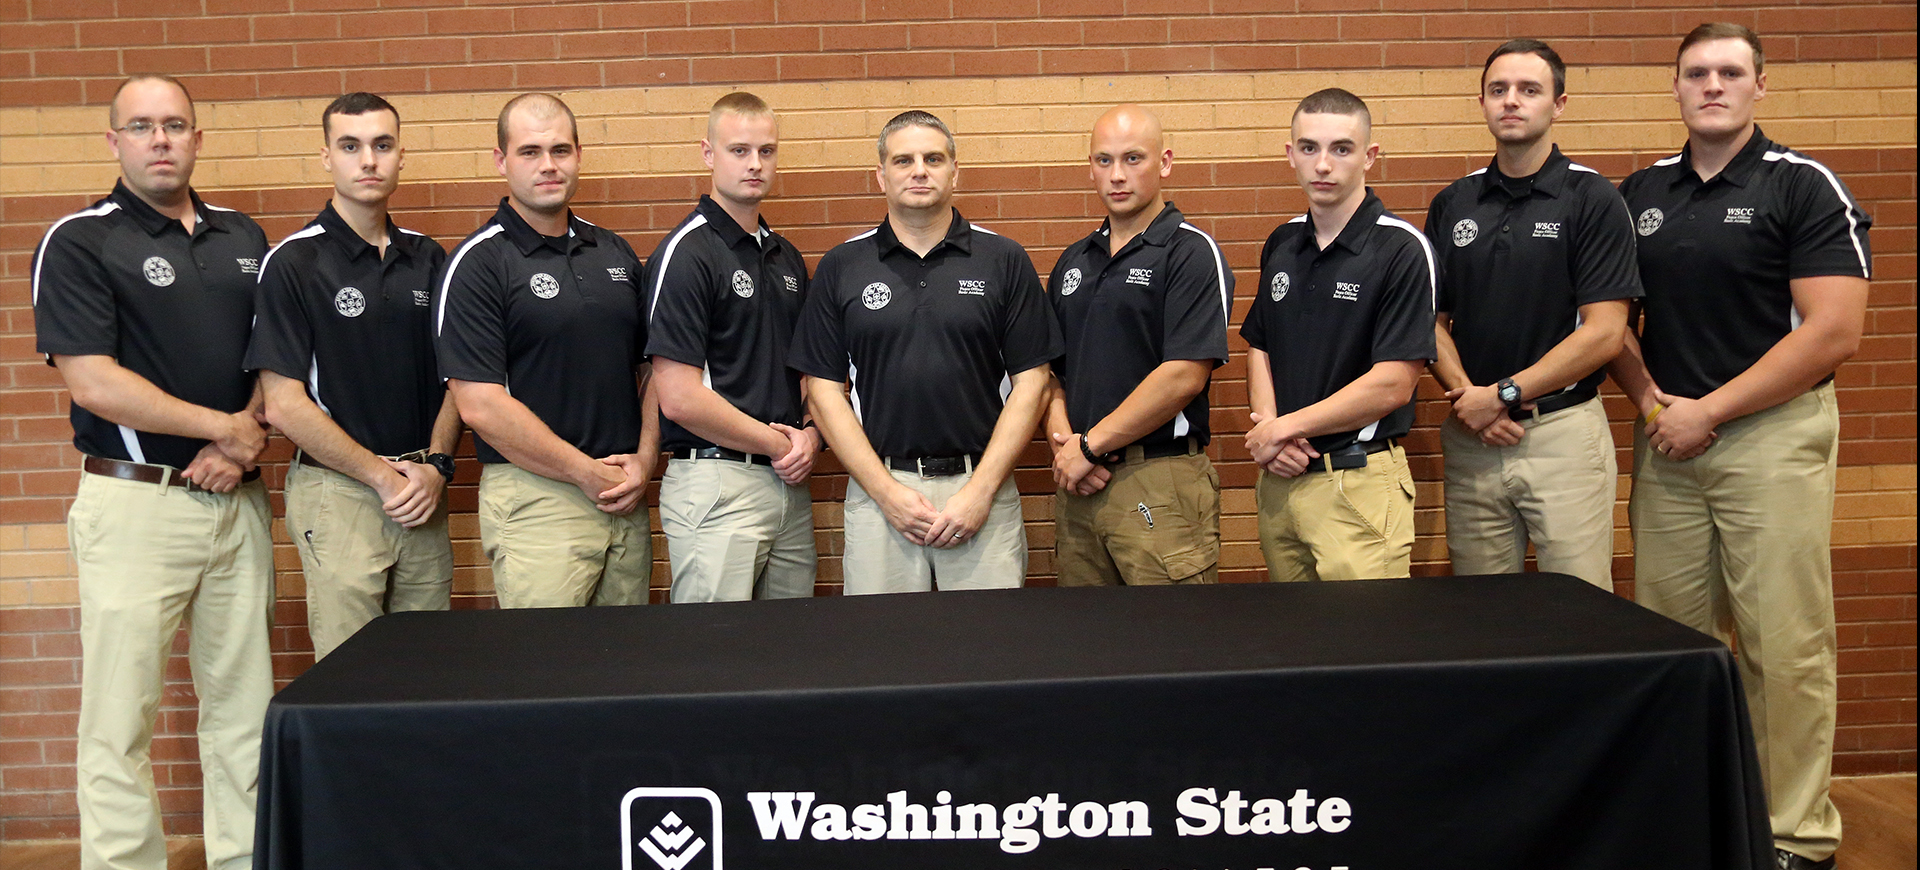 Washington State Community College (WSCC) recently recognized graduates of its Peace Officer Basic Academy (POBA). Graduates-- left to right: Travis Skinner, Matthew Stillson, Zachery Kehl, Tanner Jackson, Jeffrey Young, Tim Skinner, Quinton Anderson, Tyler Norris, and Gunner Smith